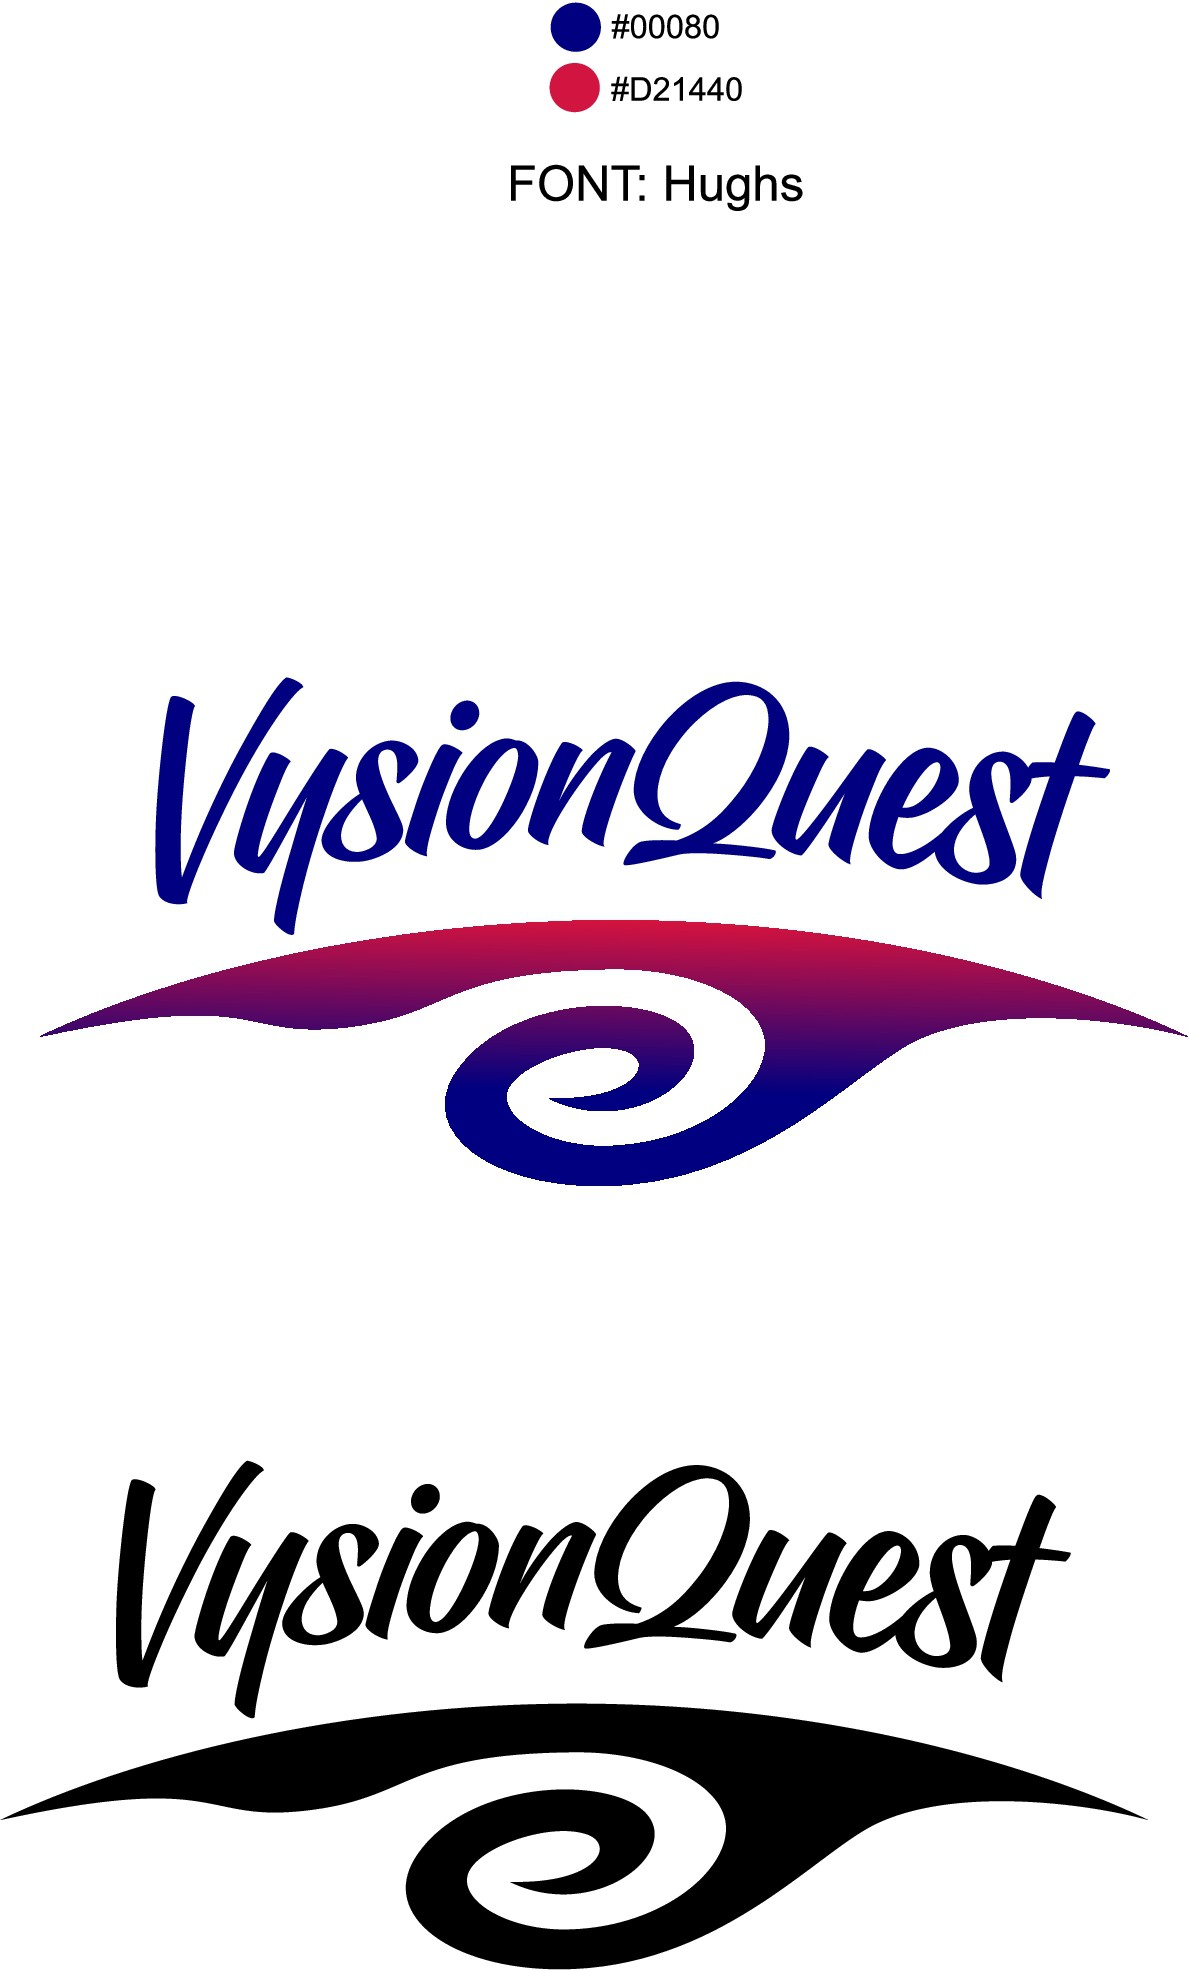 VysionQuest - Brand Update